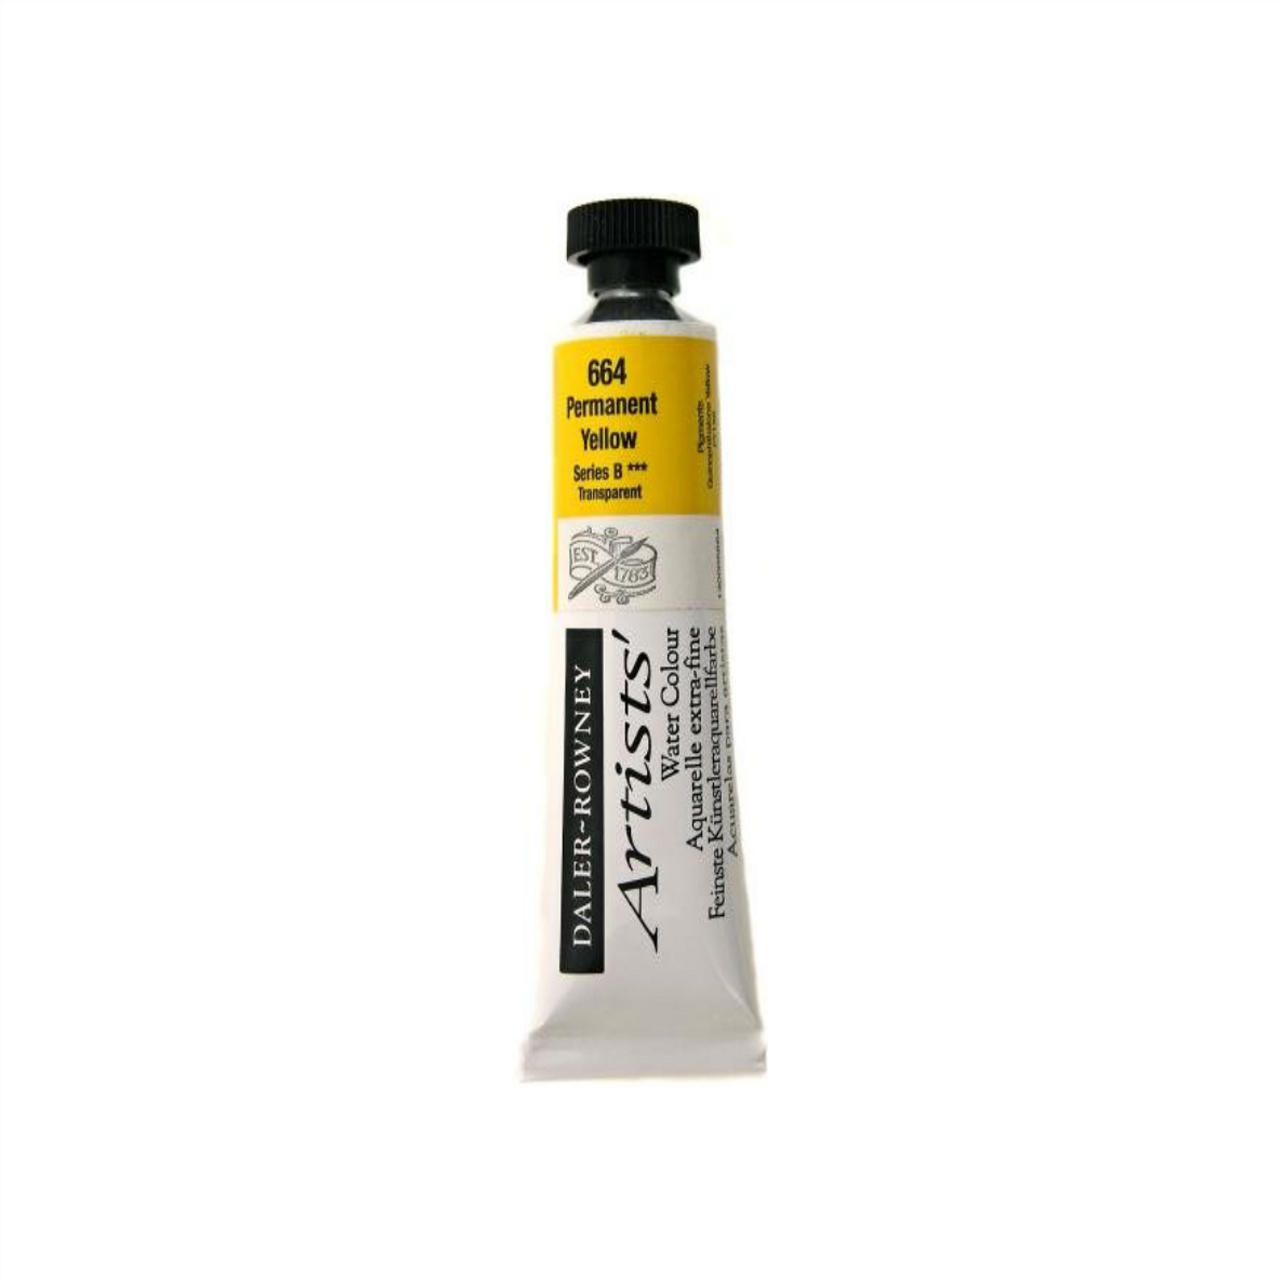 Daler-Rowney Artists' Watercolour Tube 15ml - Permanent Yellow #664